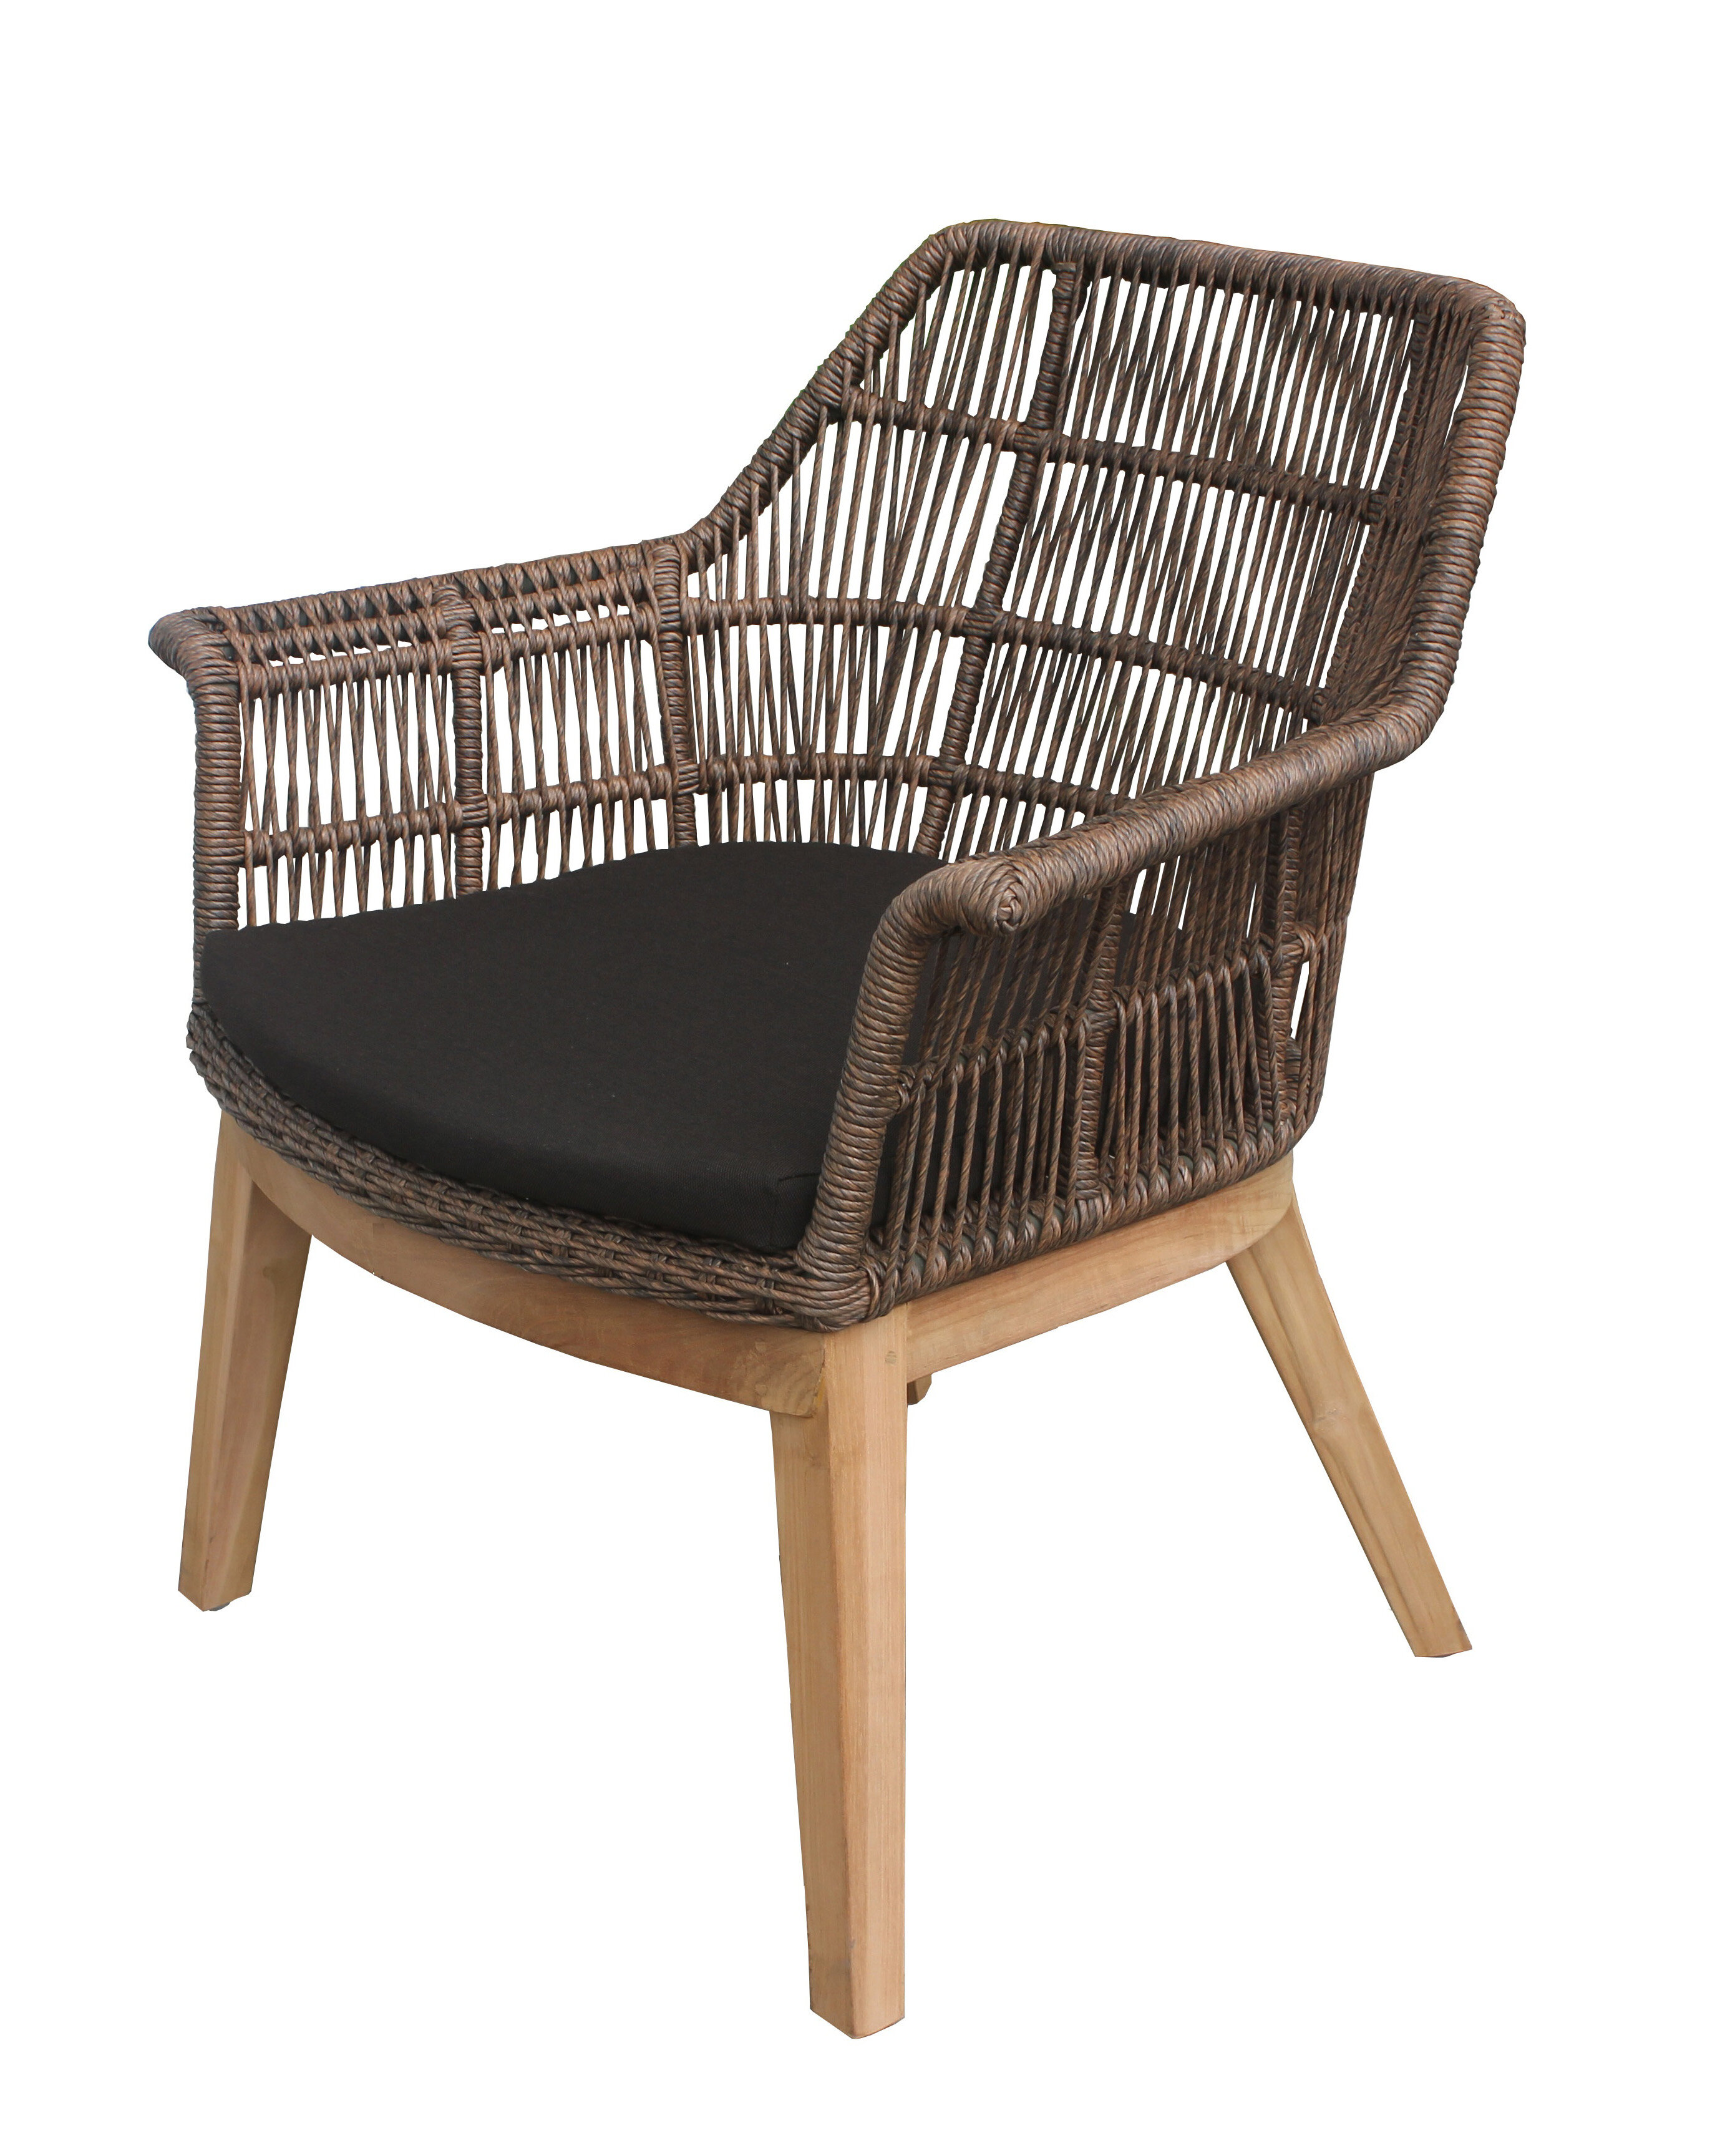 bungalow rose marley teak patio chair with cushion wayfair rh wayfair com teak wood patio chairs teak patio lounge chairs